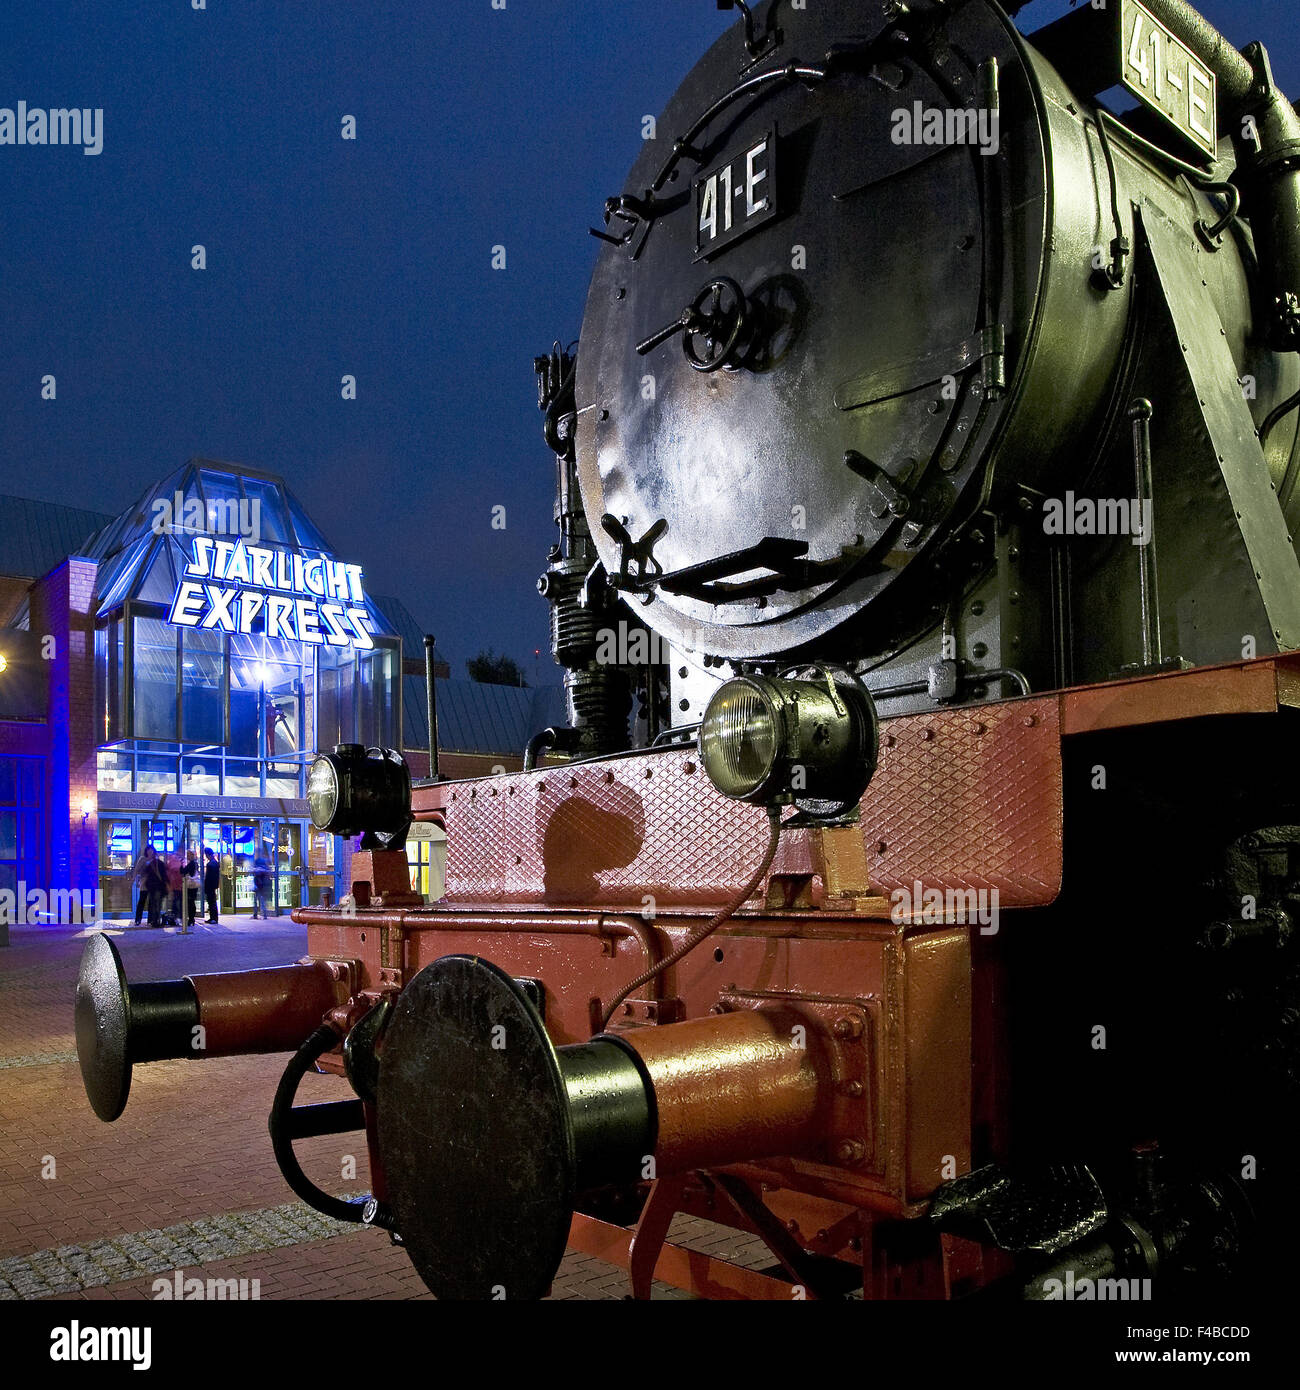 Starlight Express, Bochum, Germany. - Stock Image